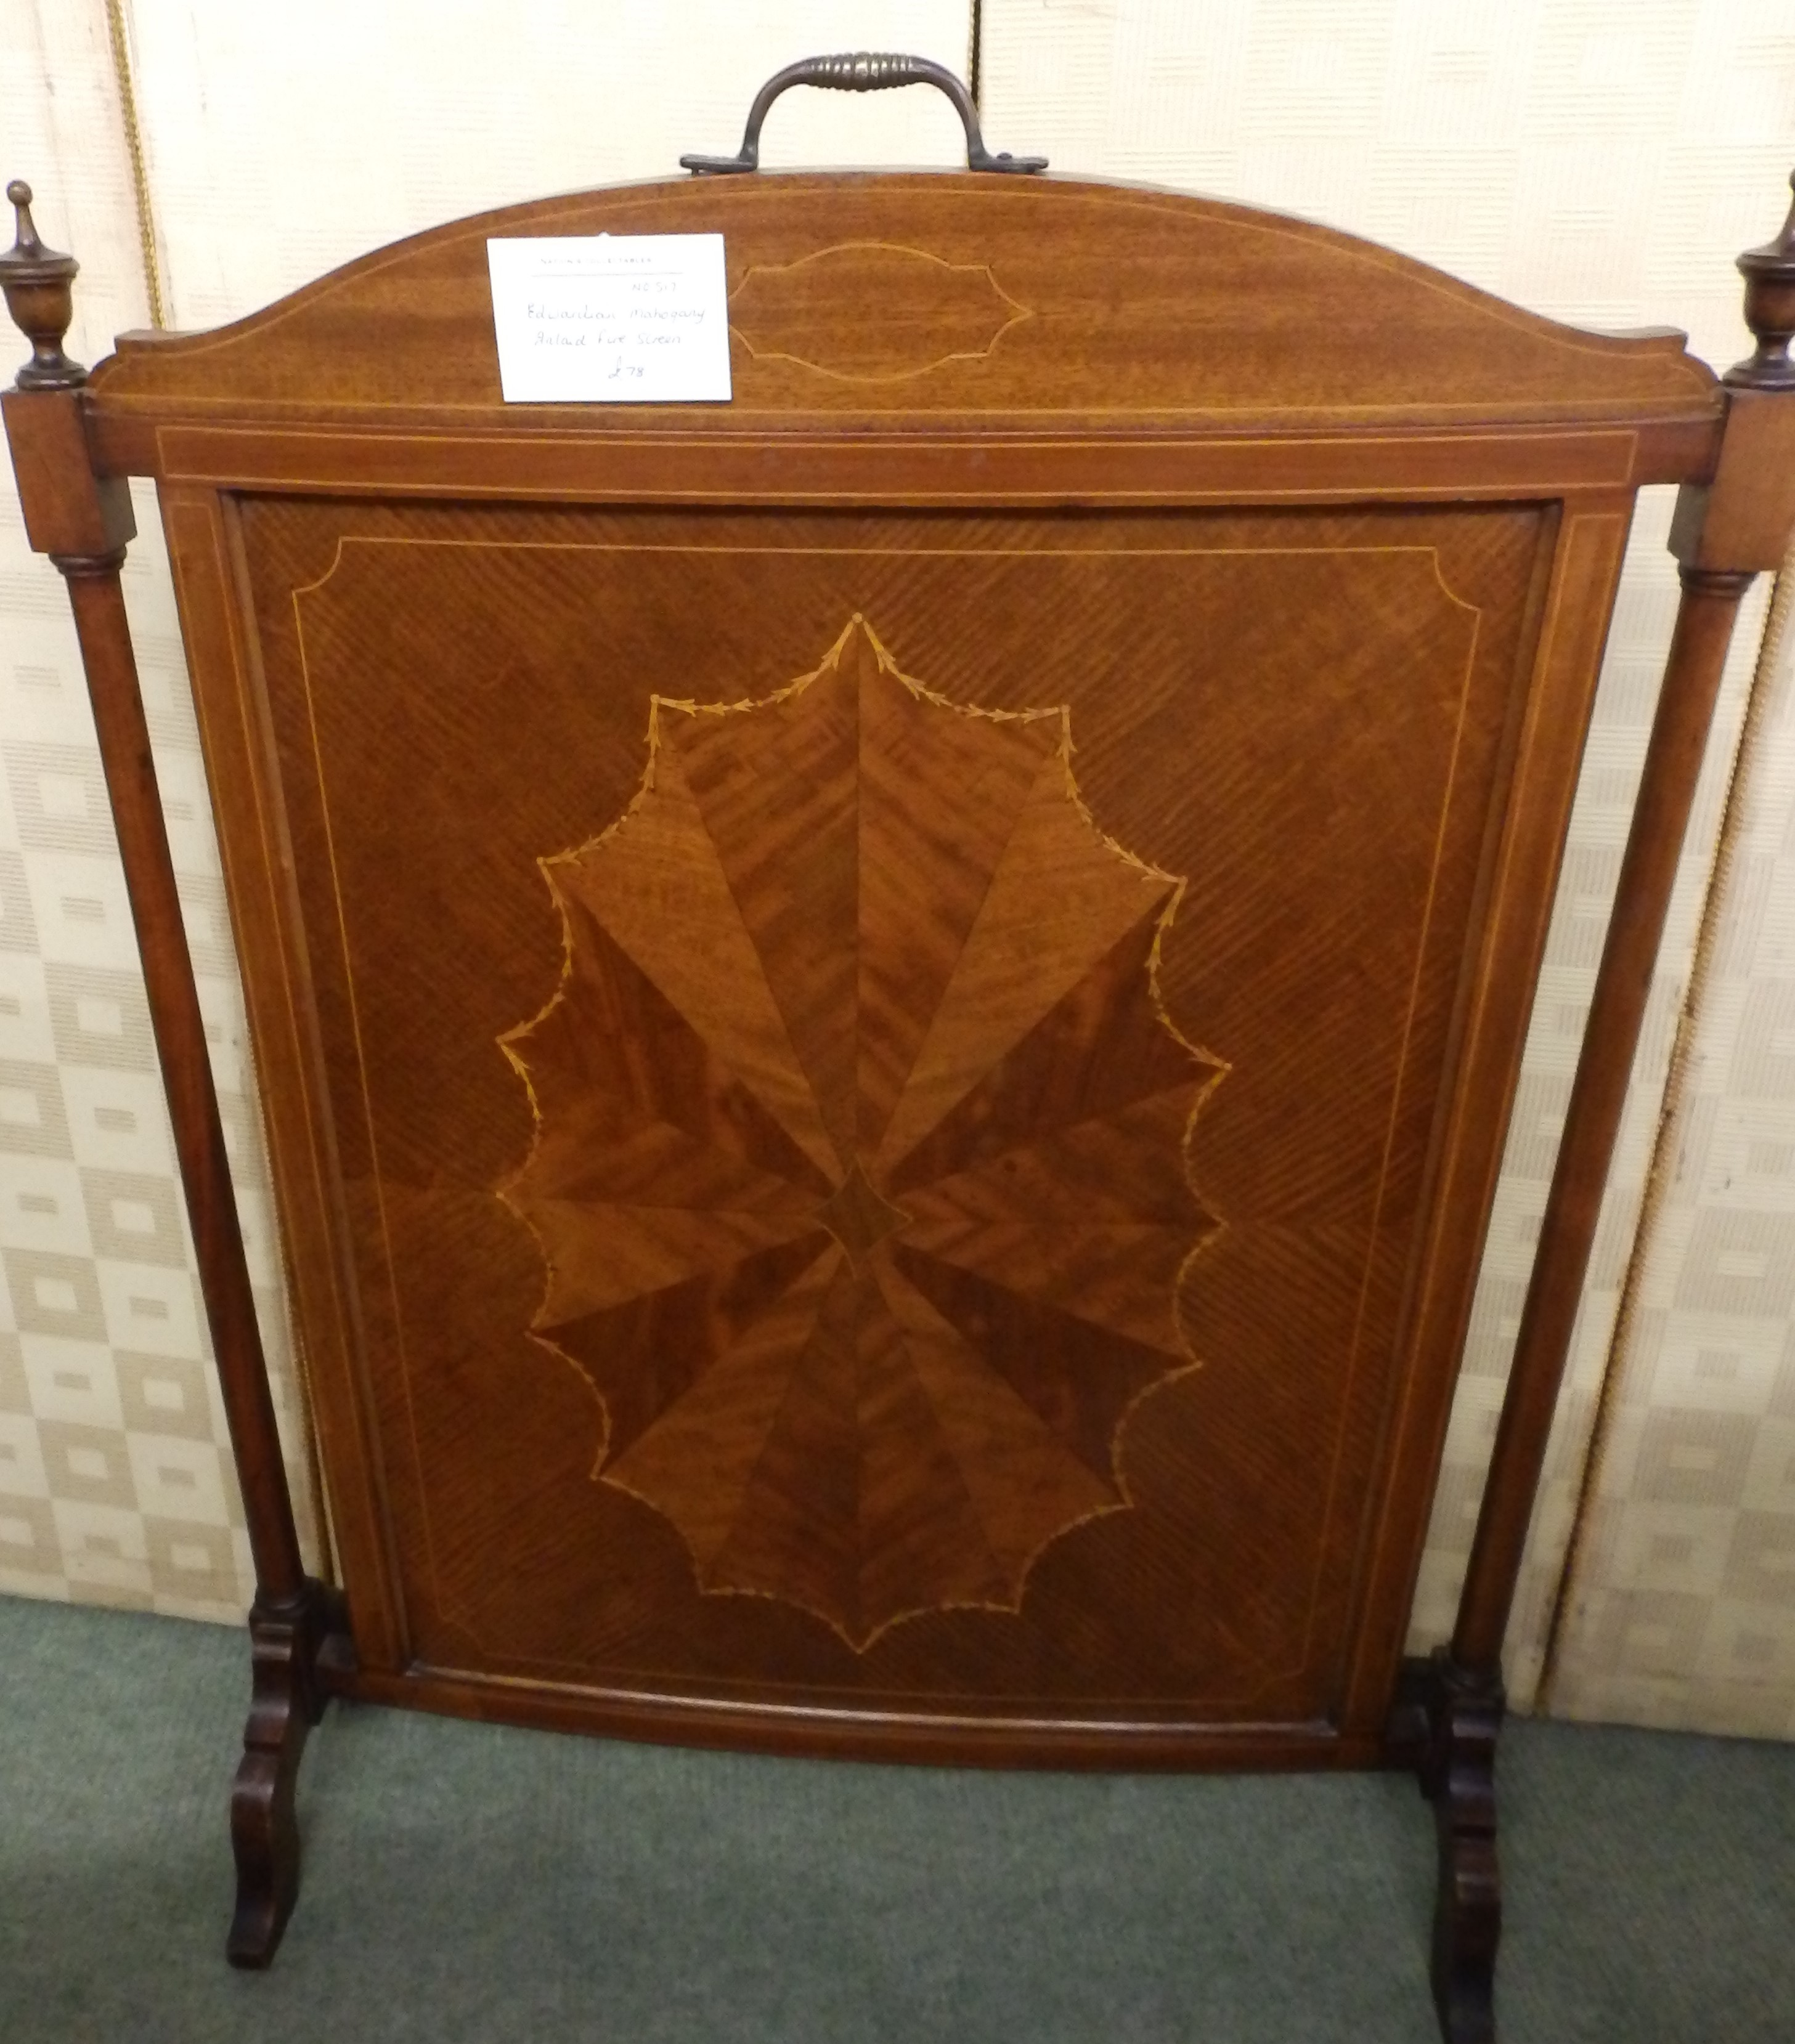 Edwardian fire screen